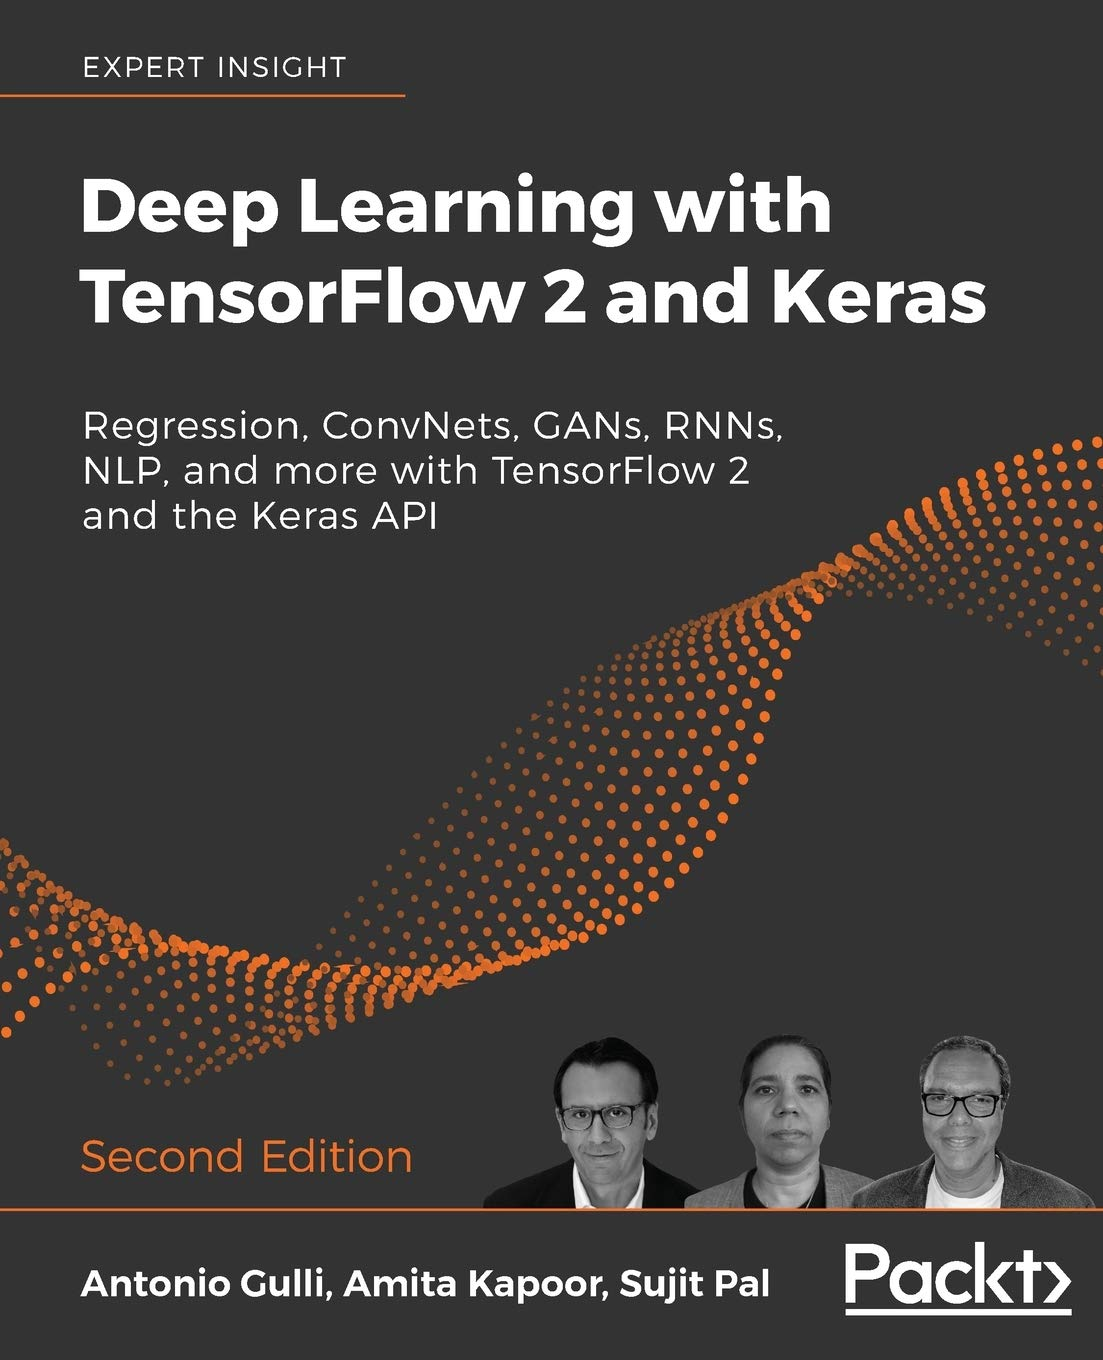 Deep Learning with TensorFloat 2 and Keras: Regression, ConvNets, GANs, RNNs, NLP, and extra with TensorFloat 2 and the Keras API, second Edition